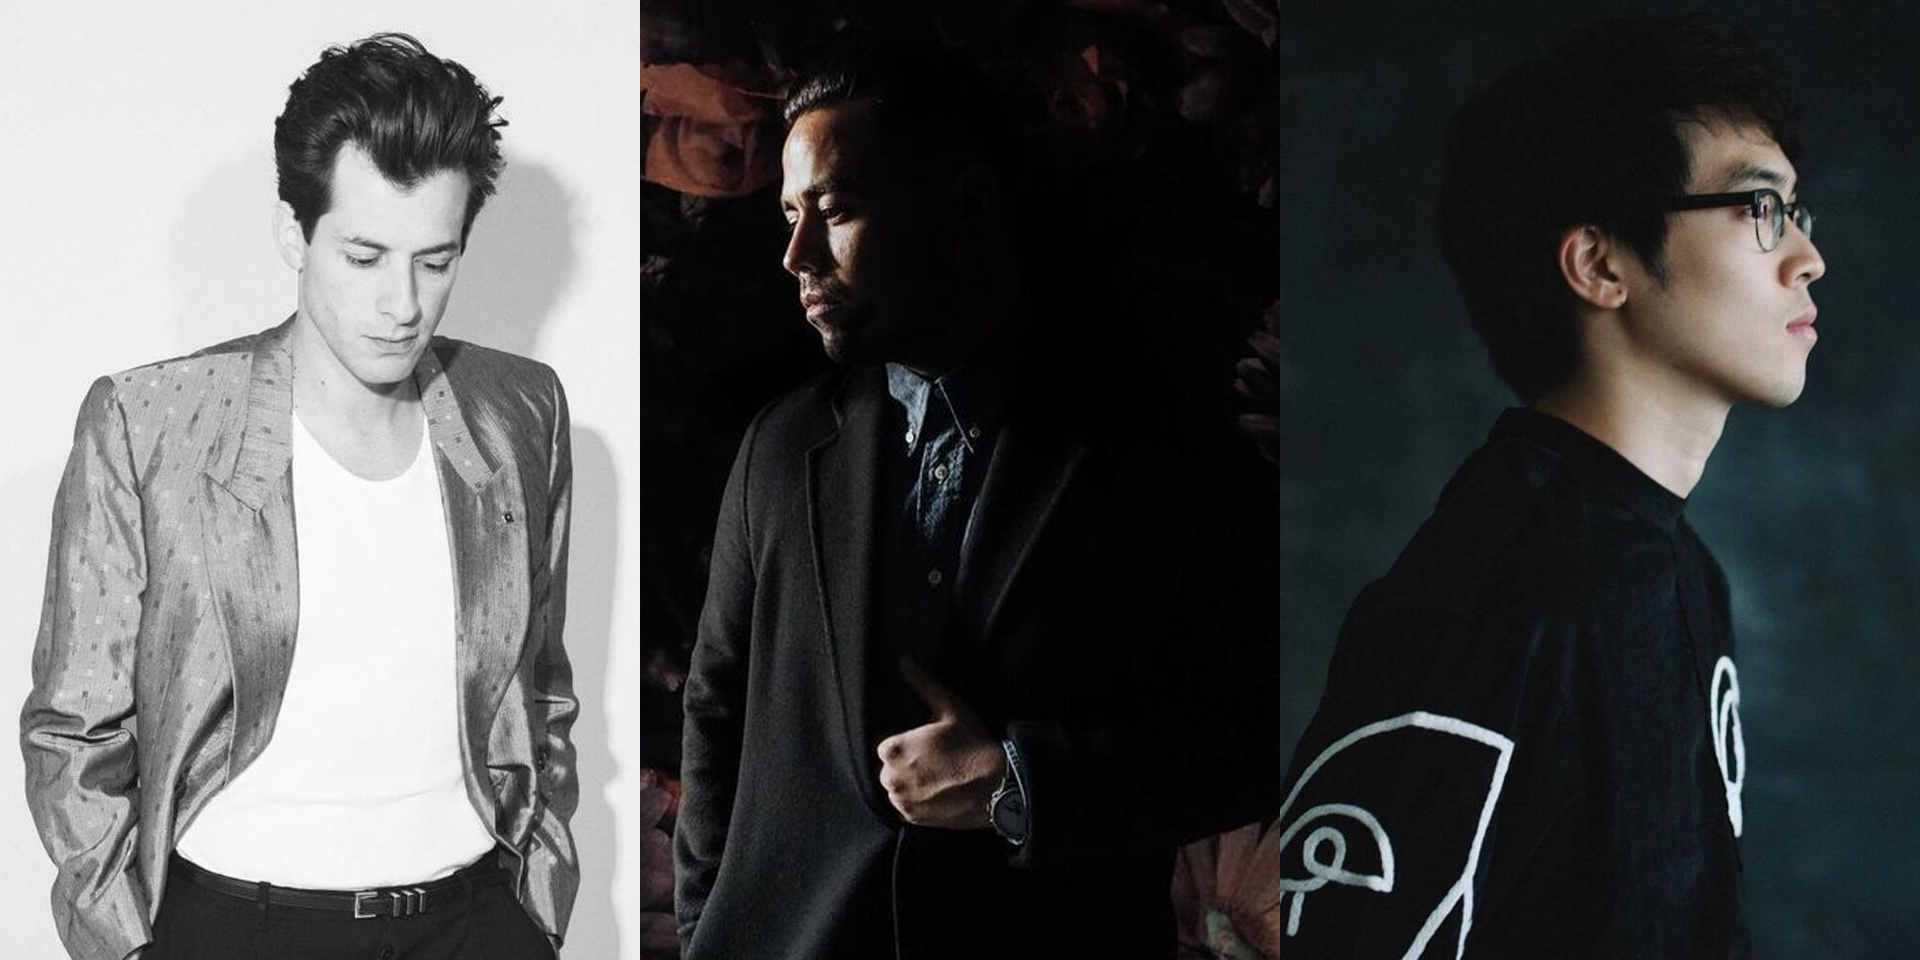 Mark Ronson, Ta-ku, Charlie Lim to play Beach Beats Fest on National Day in Singapore